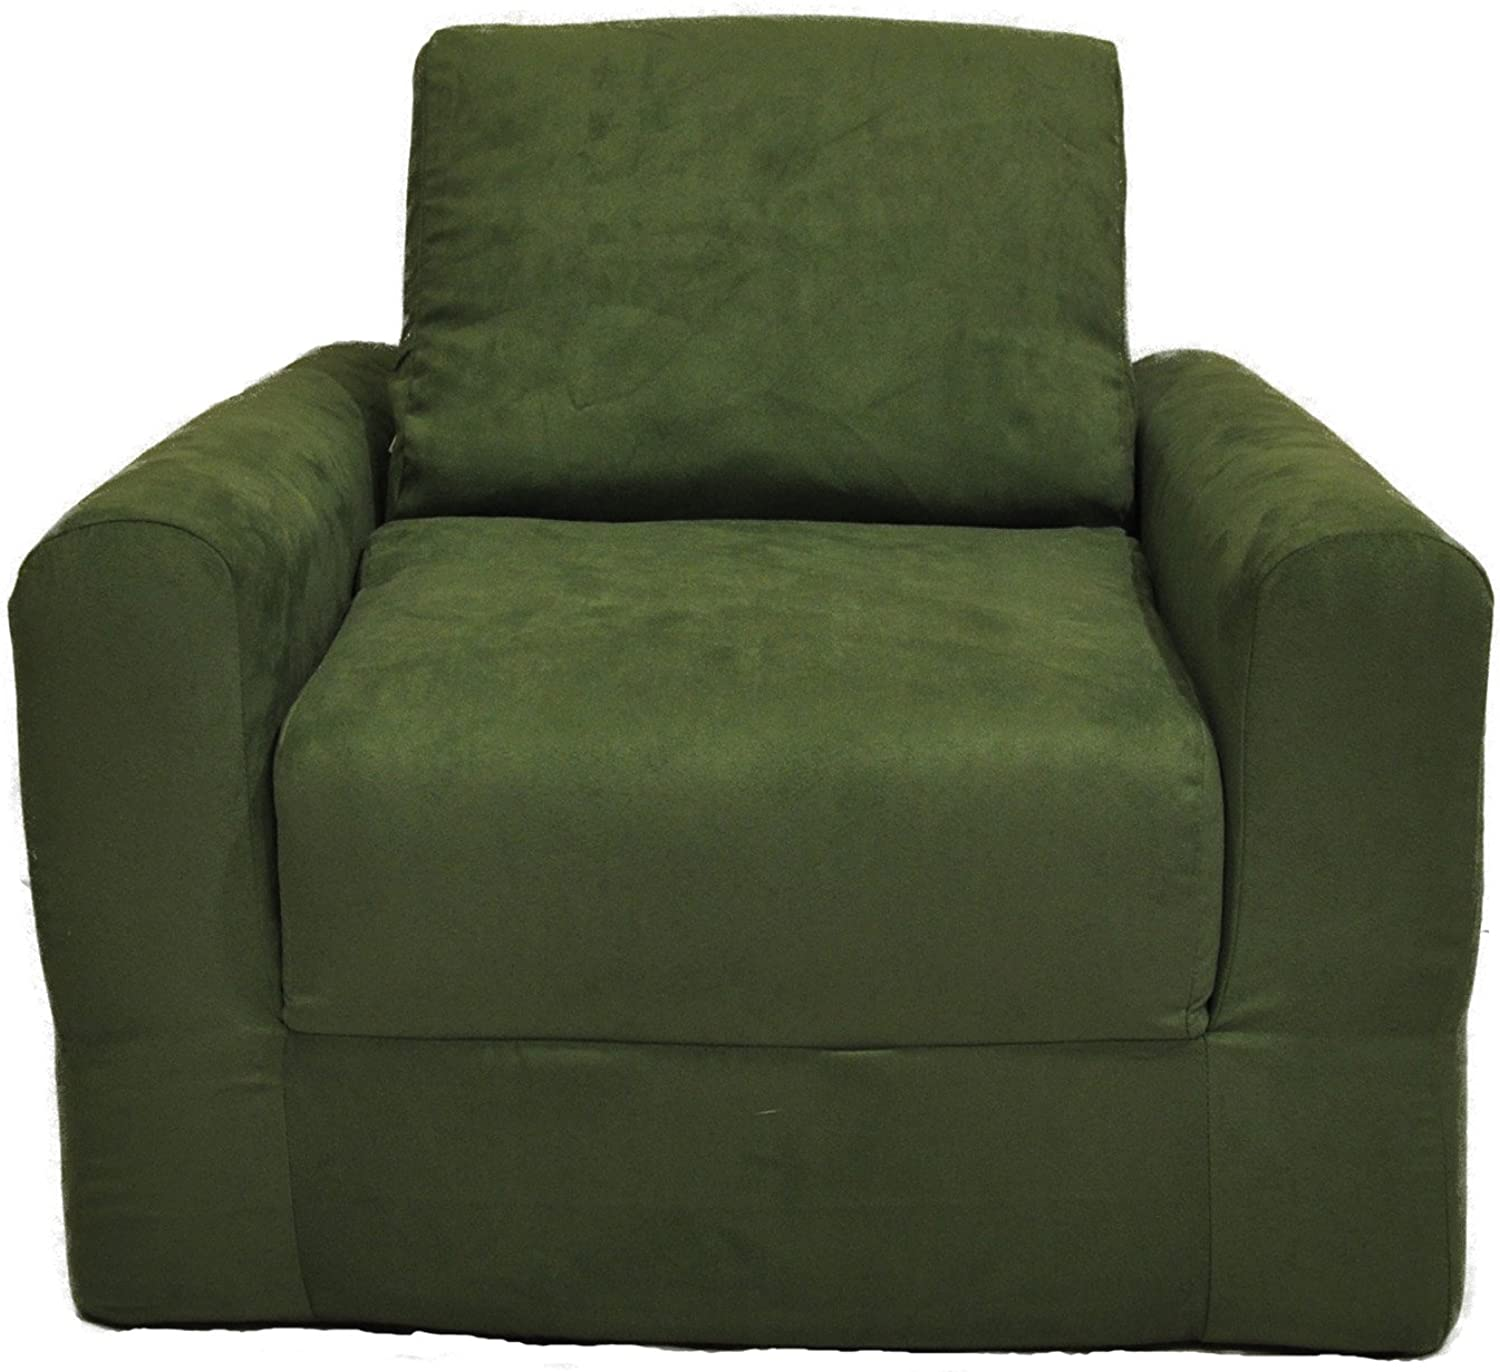 Fun Furnishings Kid's Chair Sleeper, Green Micro Suede